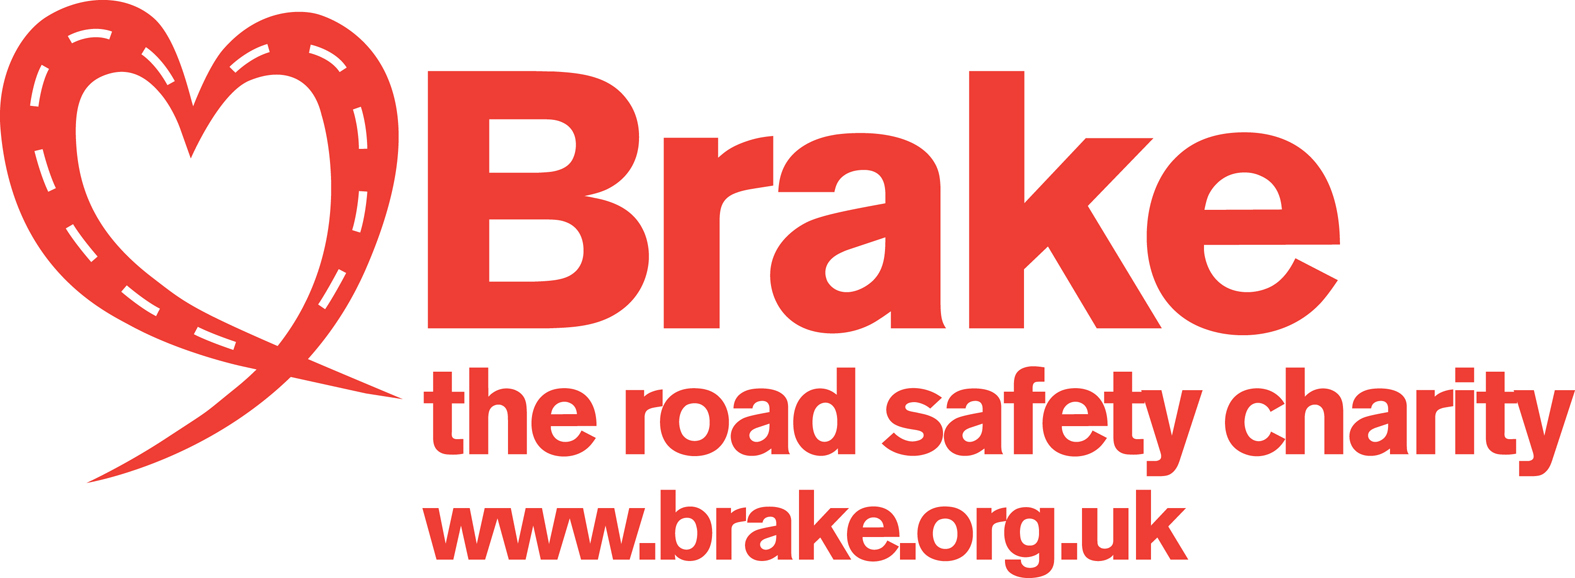 Image result for BRAKES charity